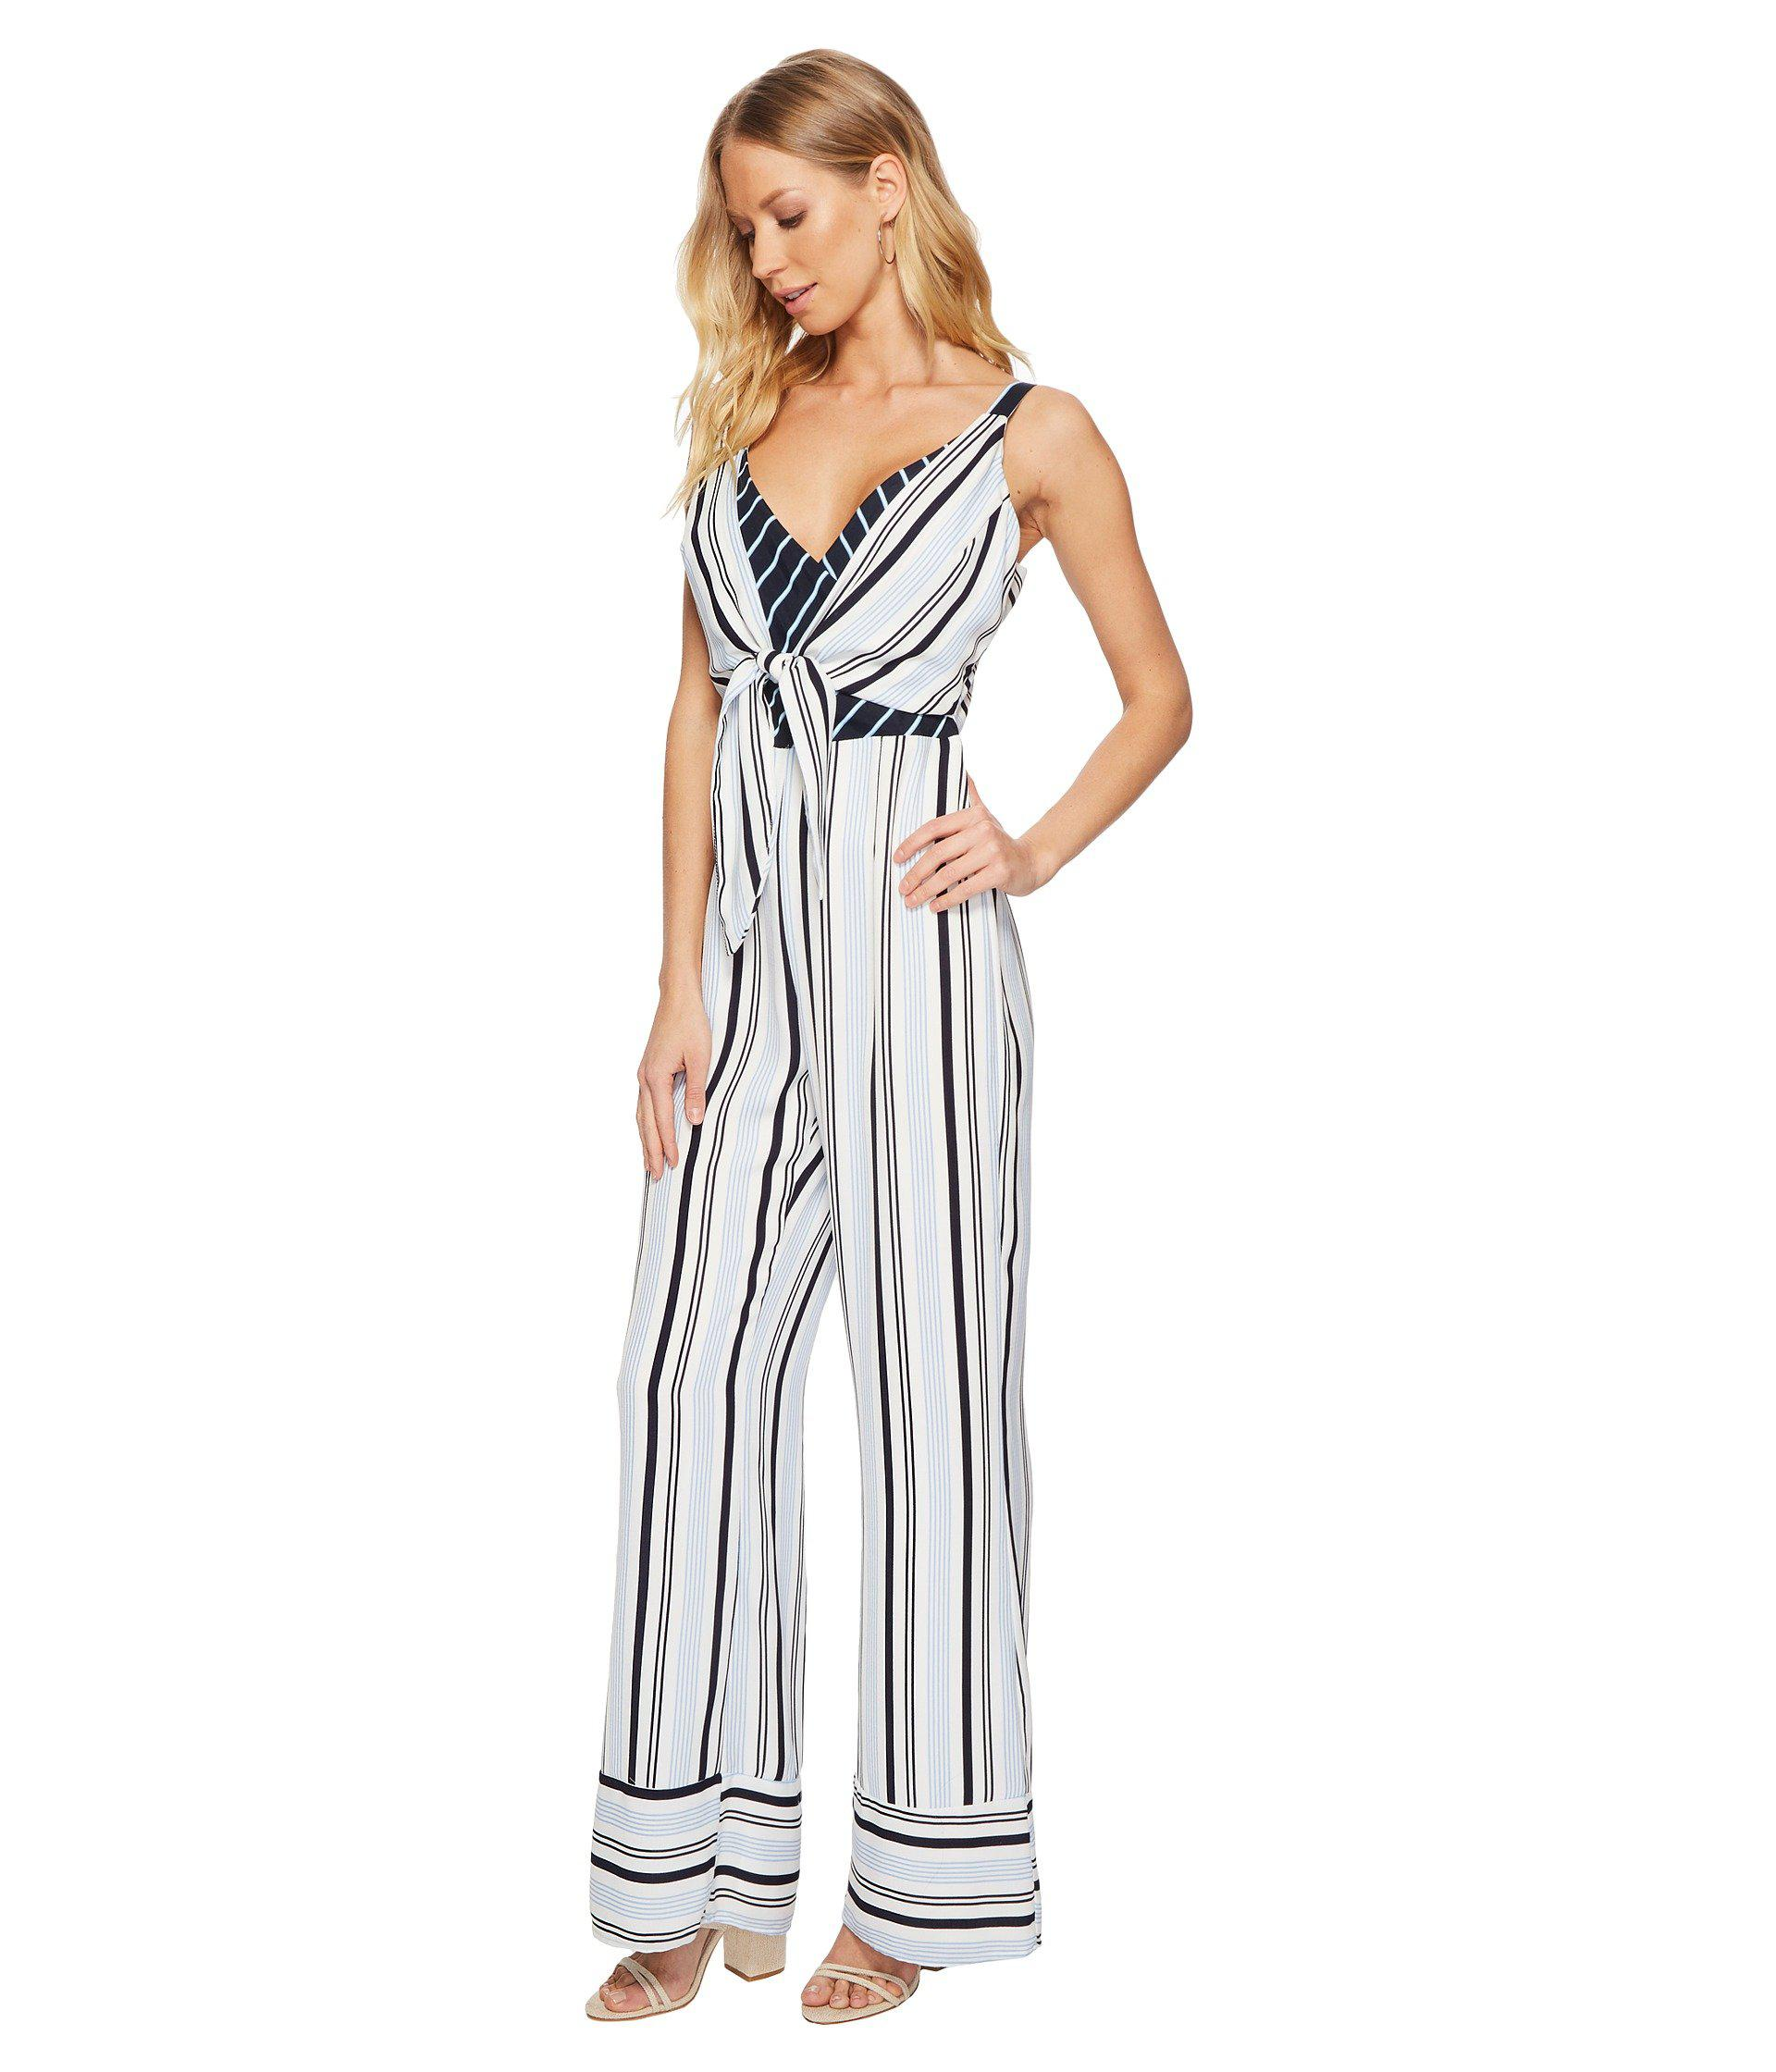 beb5ac5d059a Lyst - Adelyn Rae Ava Jumpsuit in Blue - Save 71%